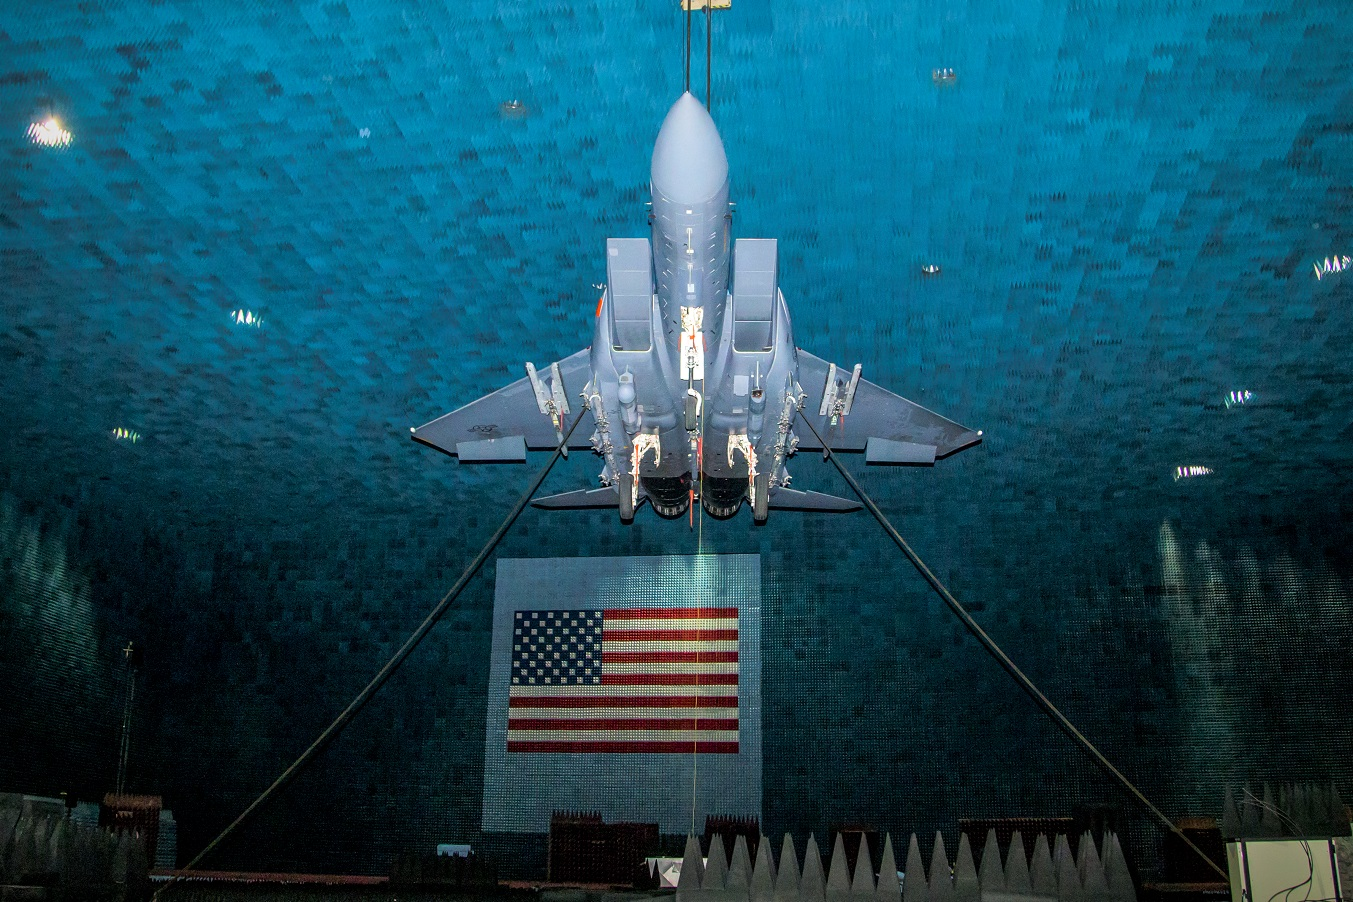 An F-15E Eagle is suspended from the ceiling at the Benefield Anechoic Facility